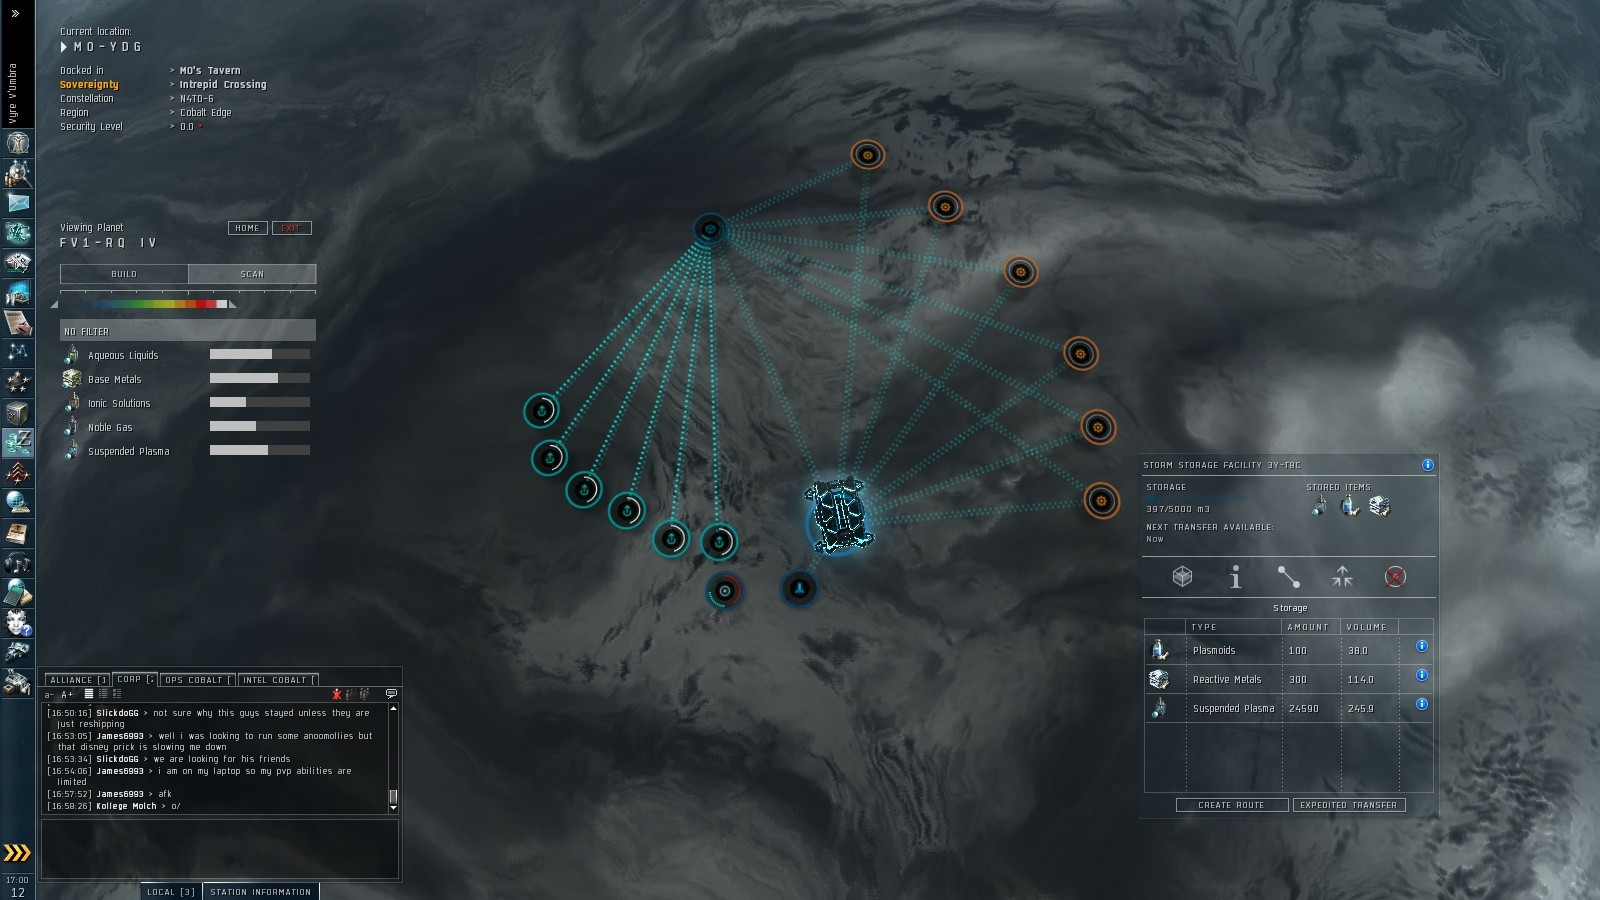 EVE Online - Tyrannis tyrannically let me down...